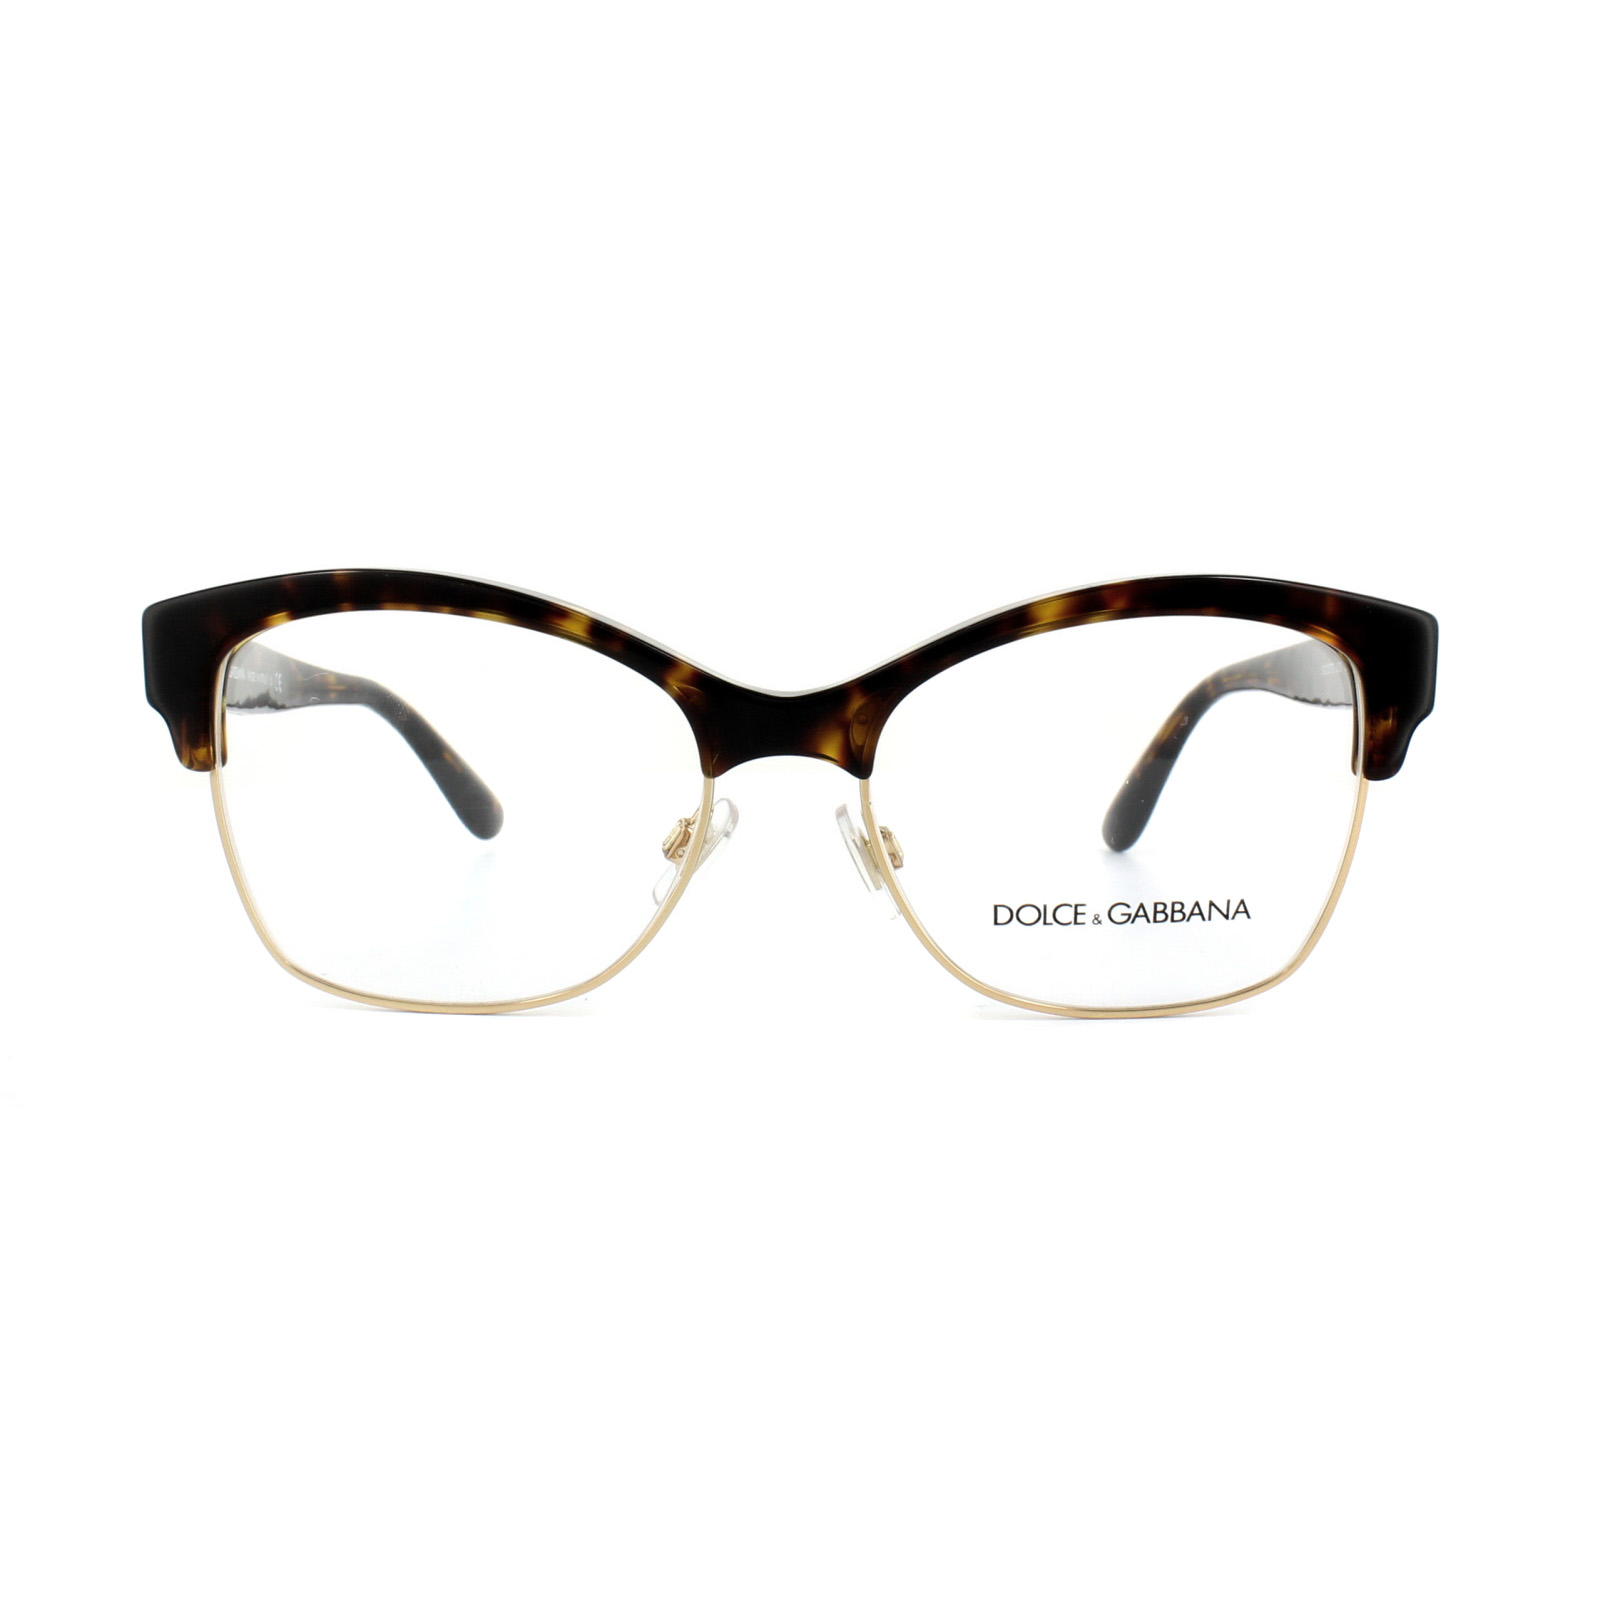 Cheap Dolce and Gabbana DG 3272 Glasses Frames - Discounted Sunglasses